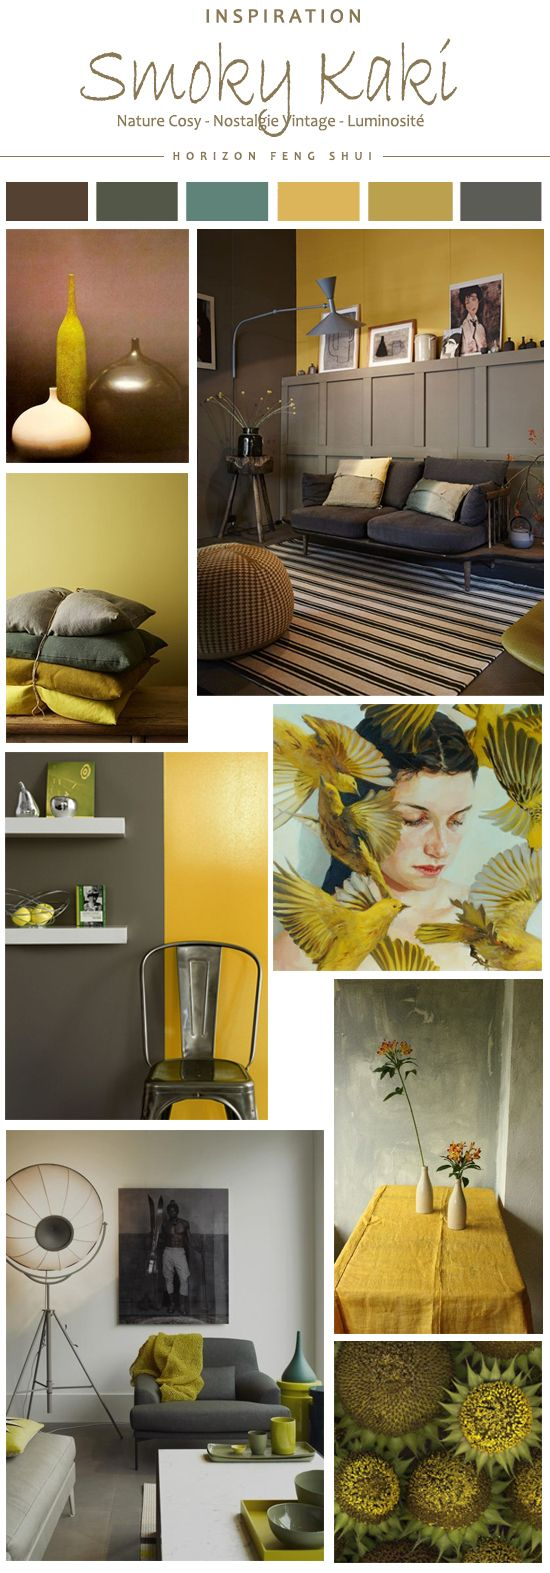 Tendance Couleur : Smoky Kaki  jaune moutarde ocre gris nature vintage